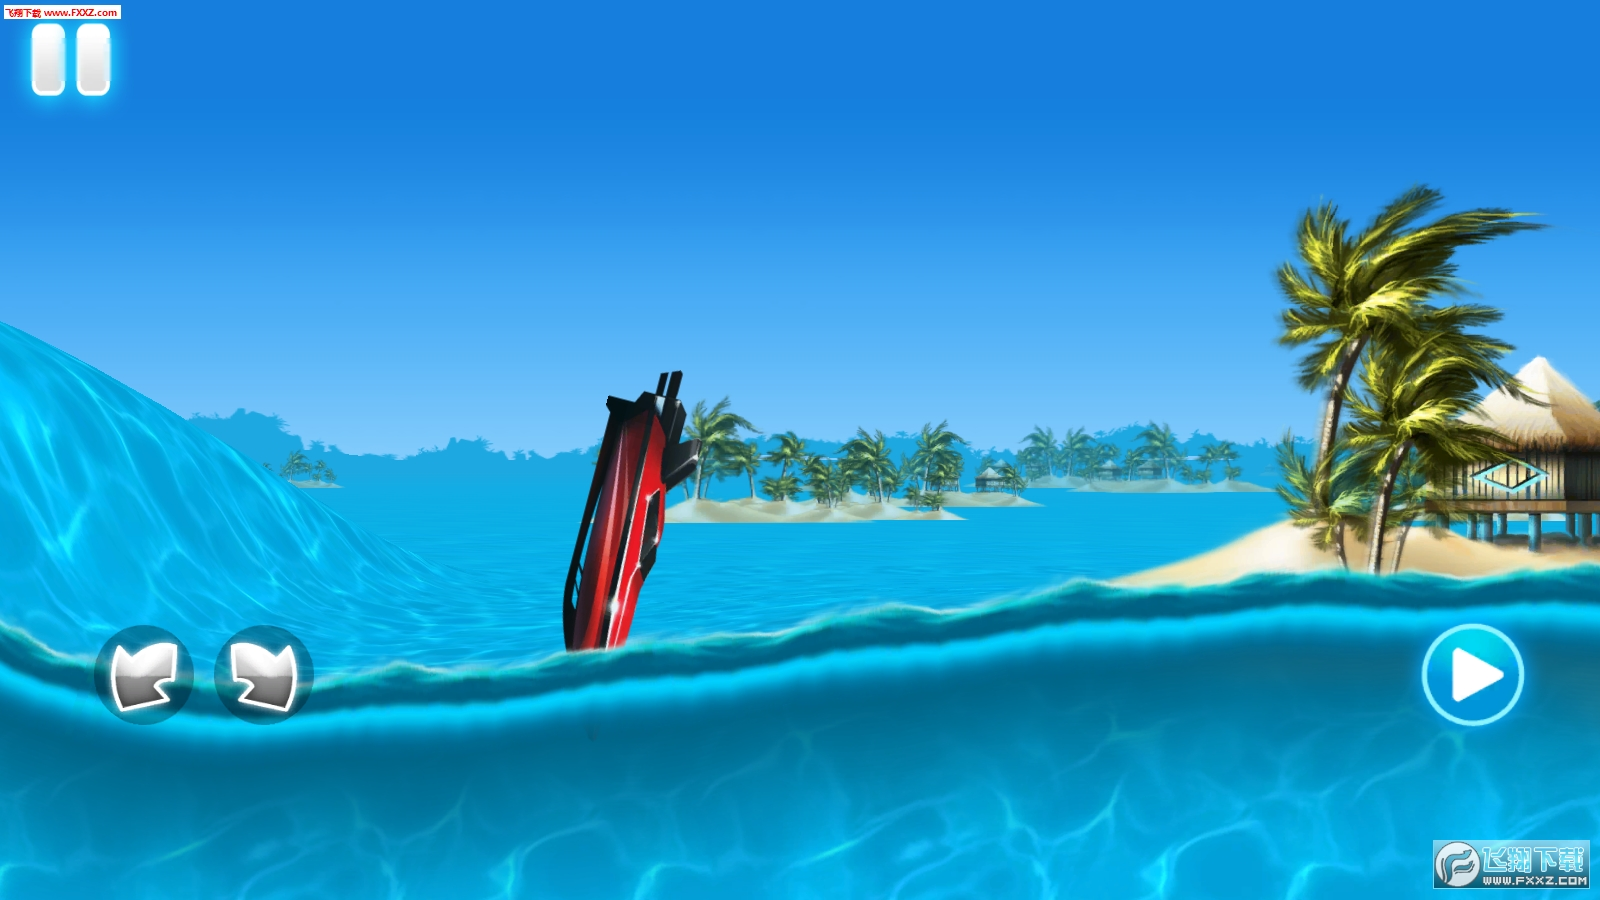 Tropical island boat racing手游截图2